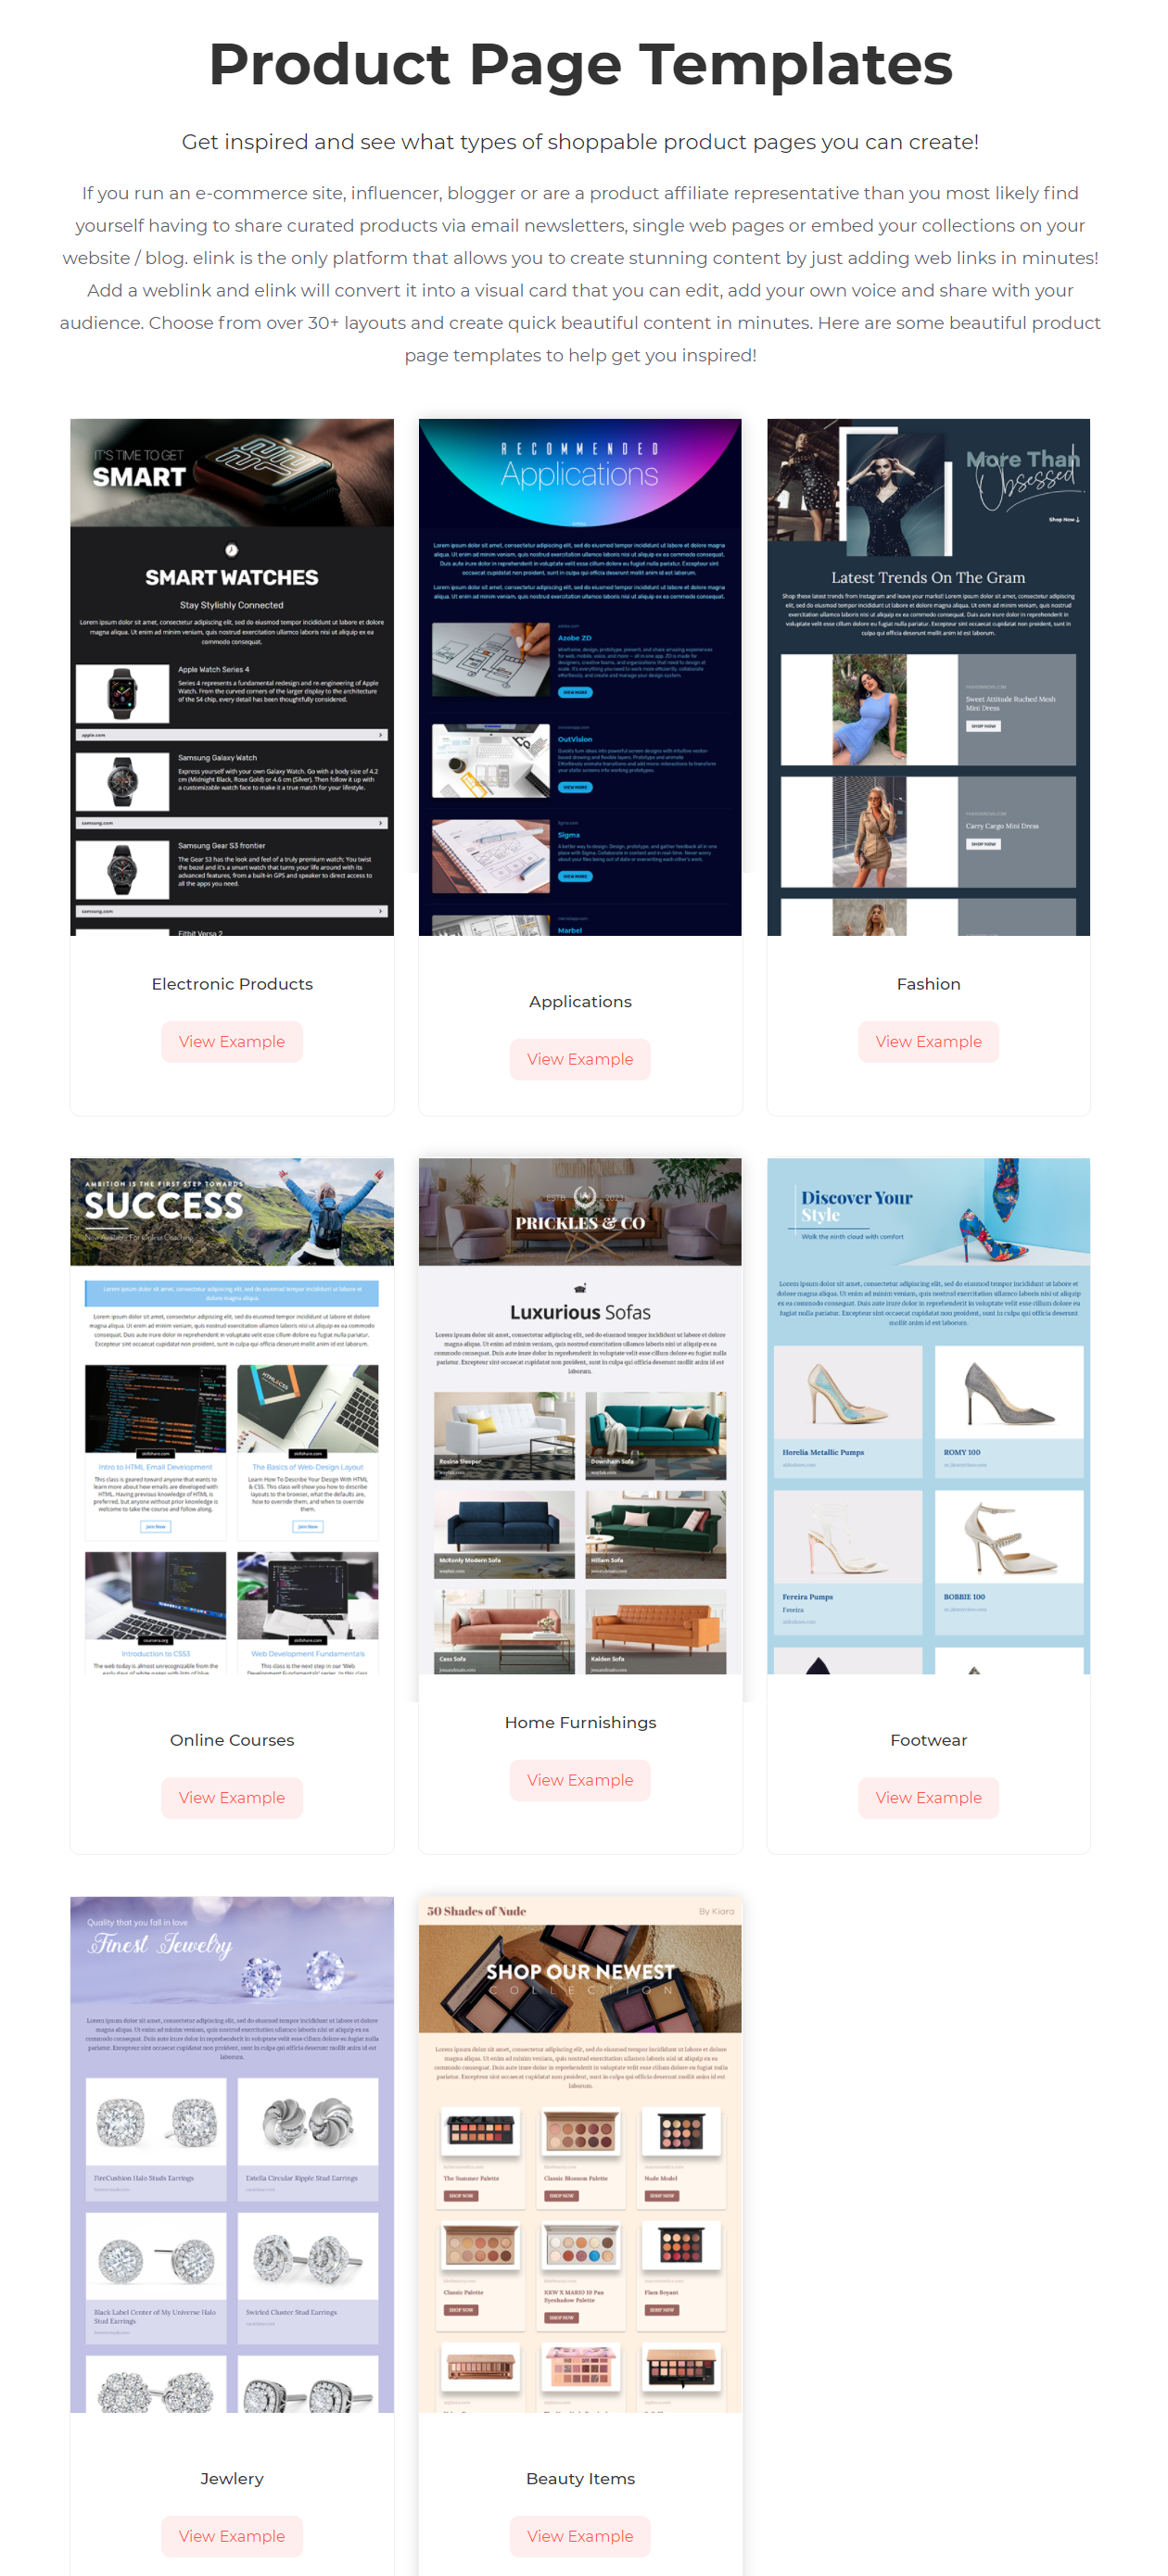 Product page templates screenshot